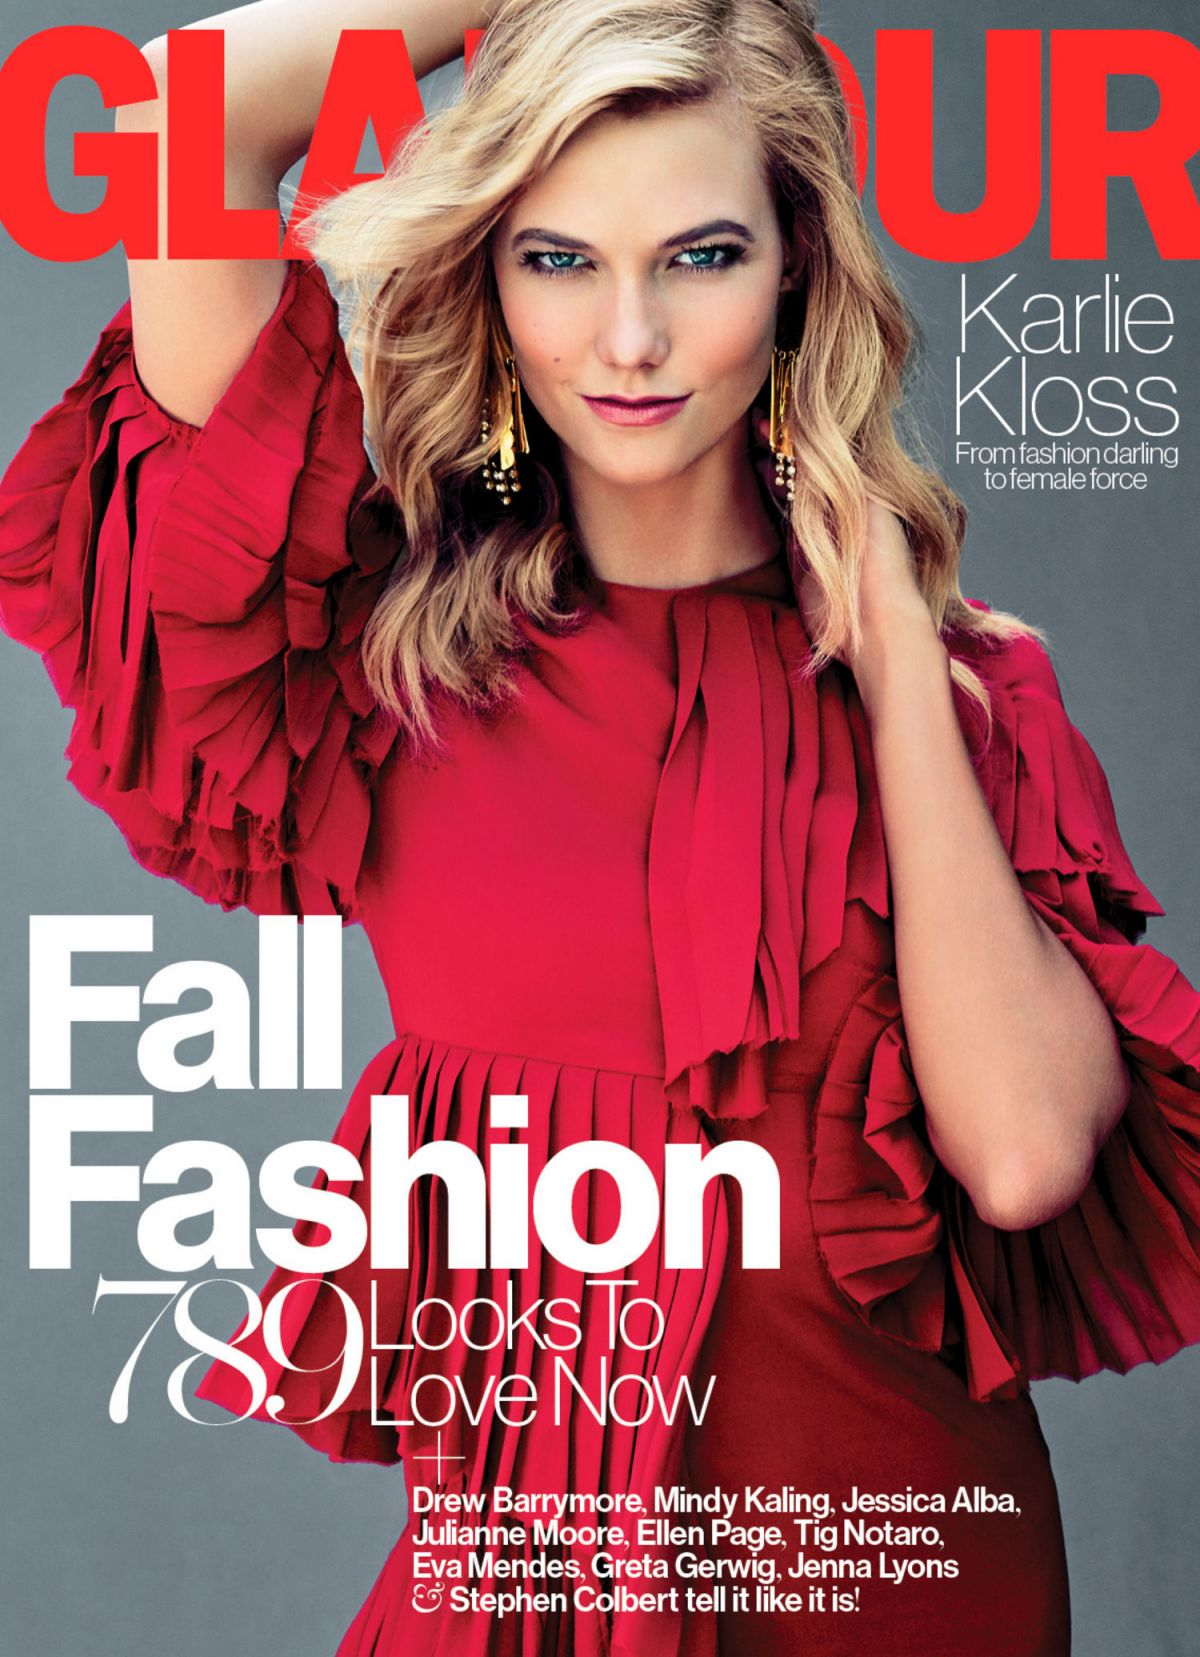 Karlie Kloss In Glamour Magazine September 2015 Issue